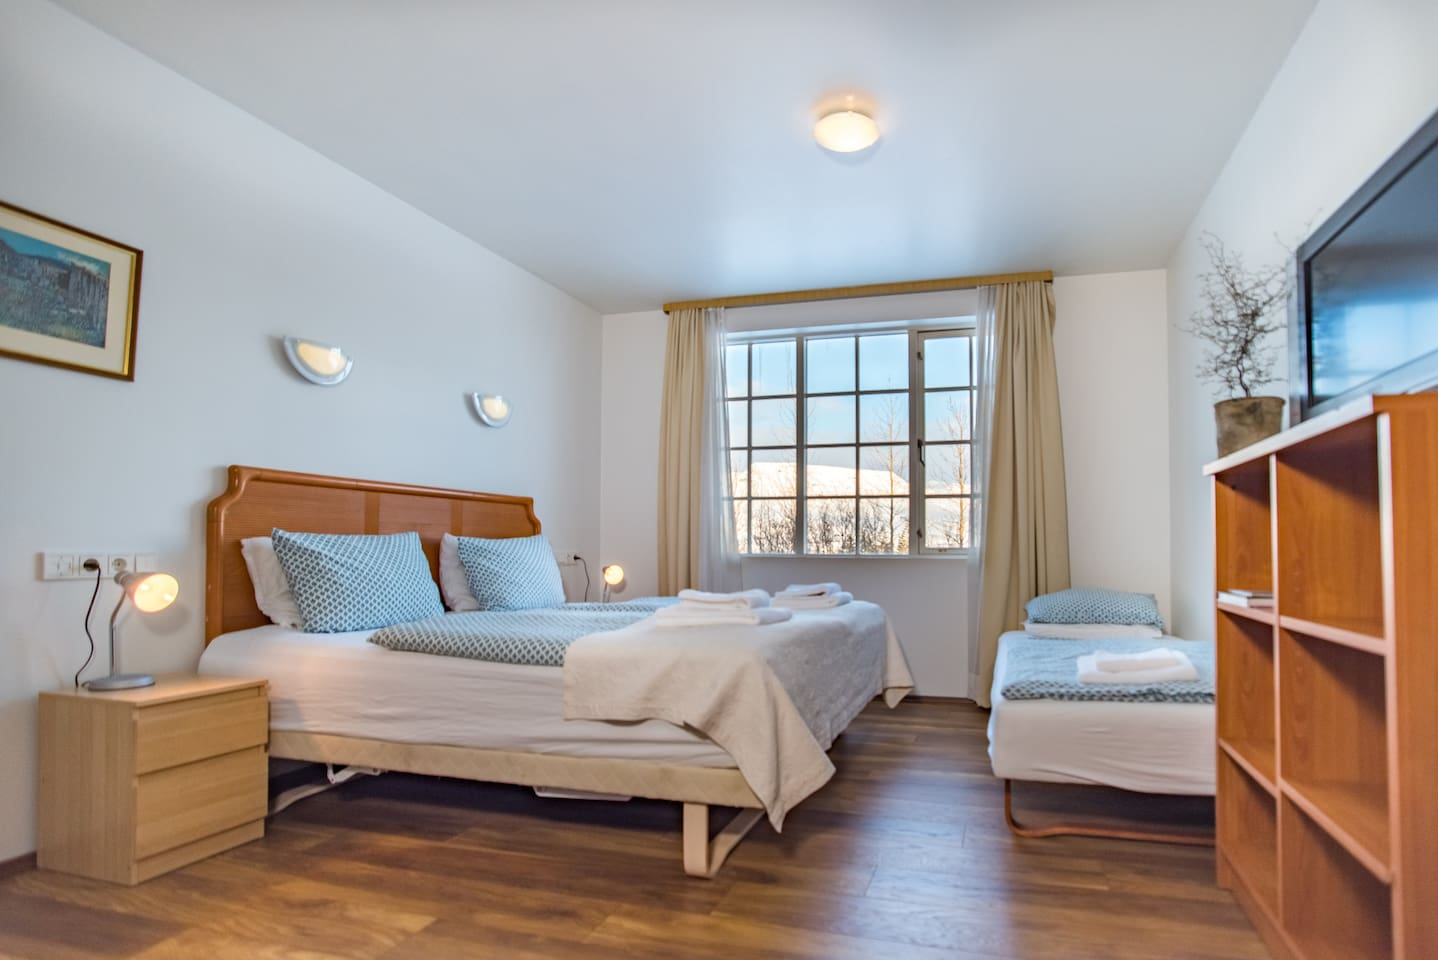 Our studio apartments can have up to 3 twin beds